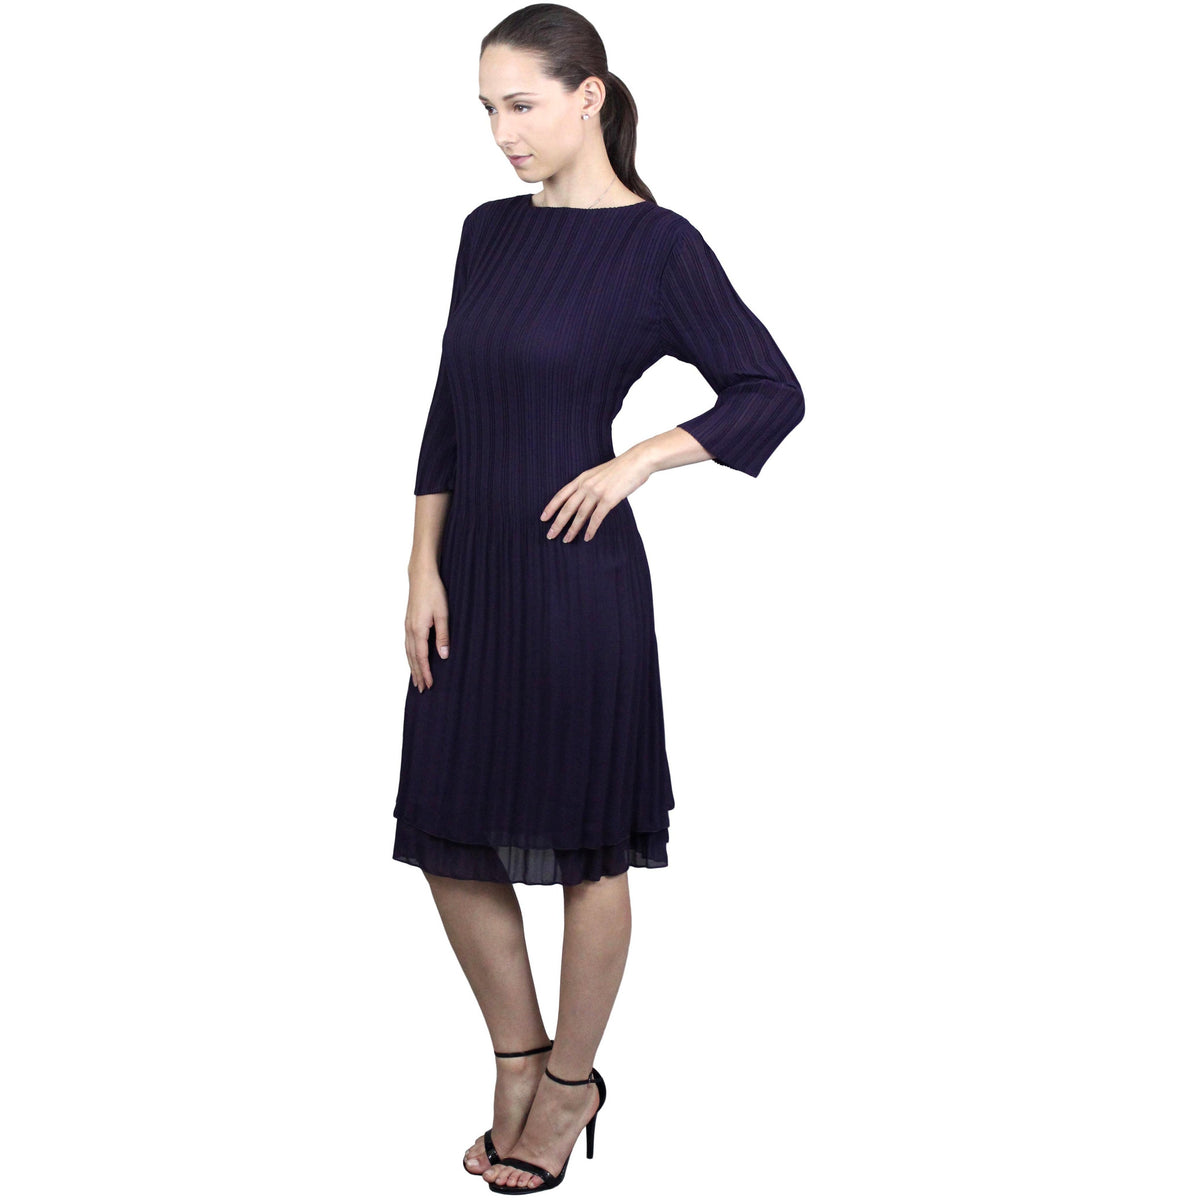 High Neck 3/4 Sleeve Crinkle Dress - Eggplant